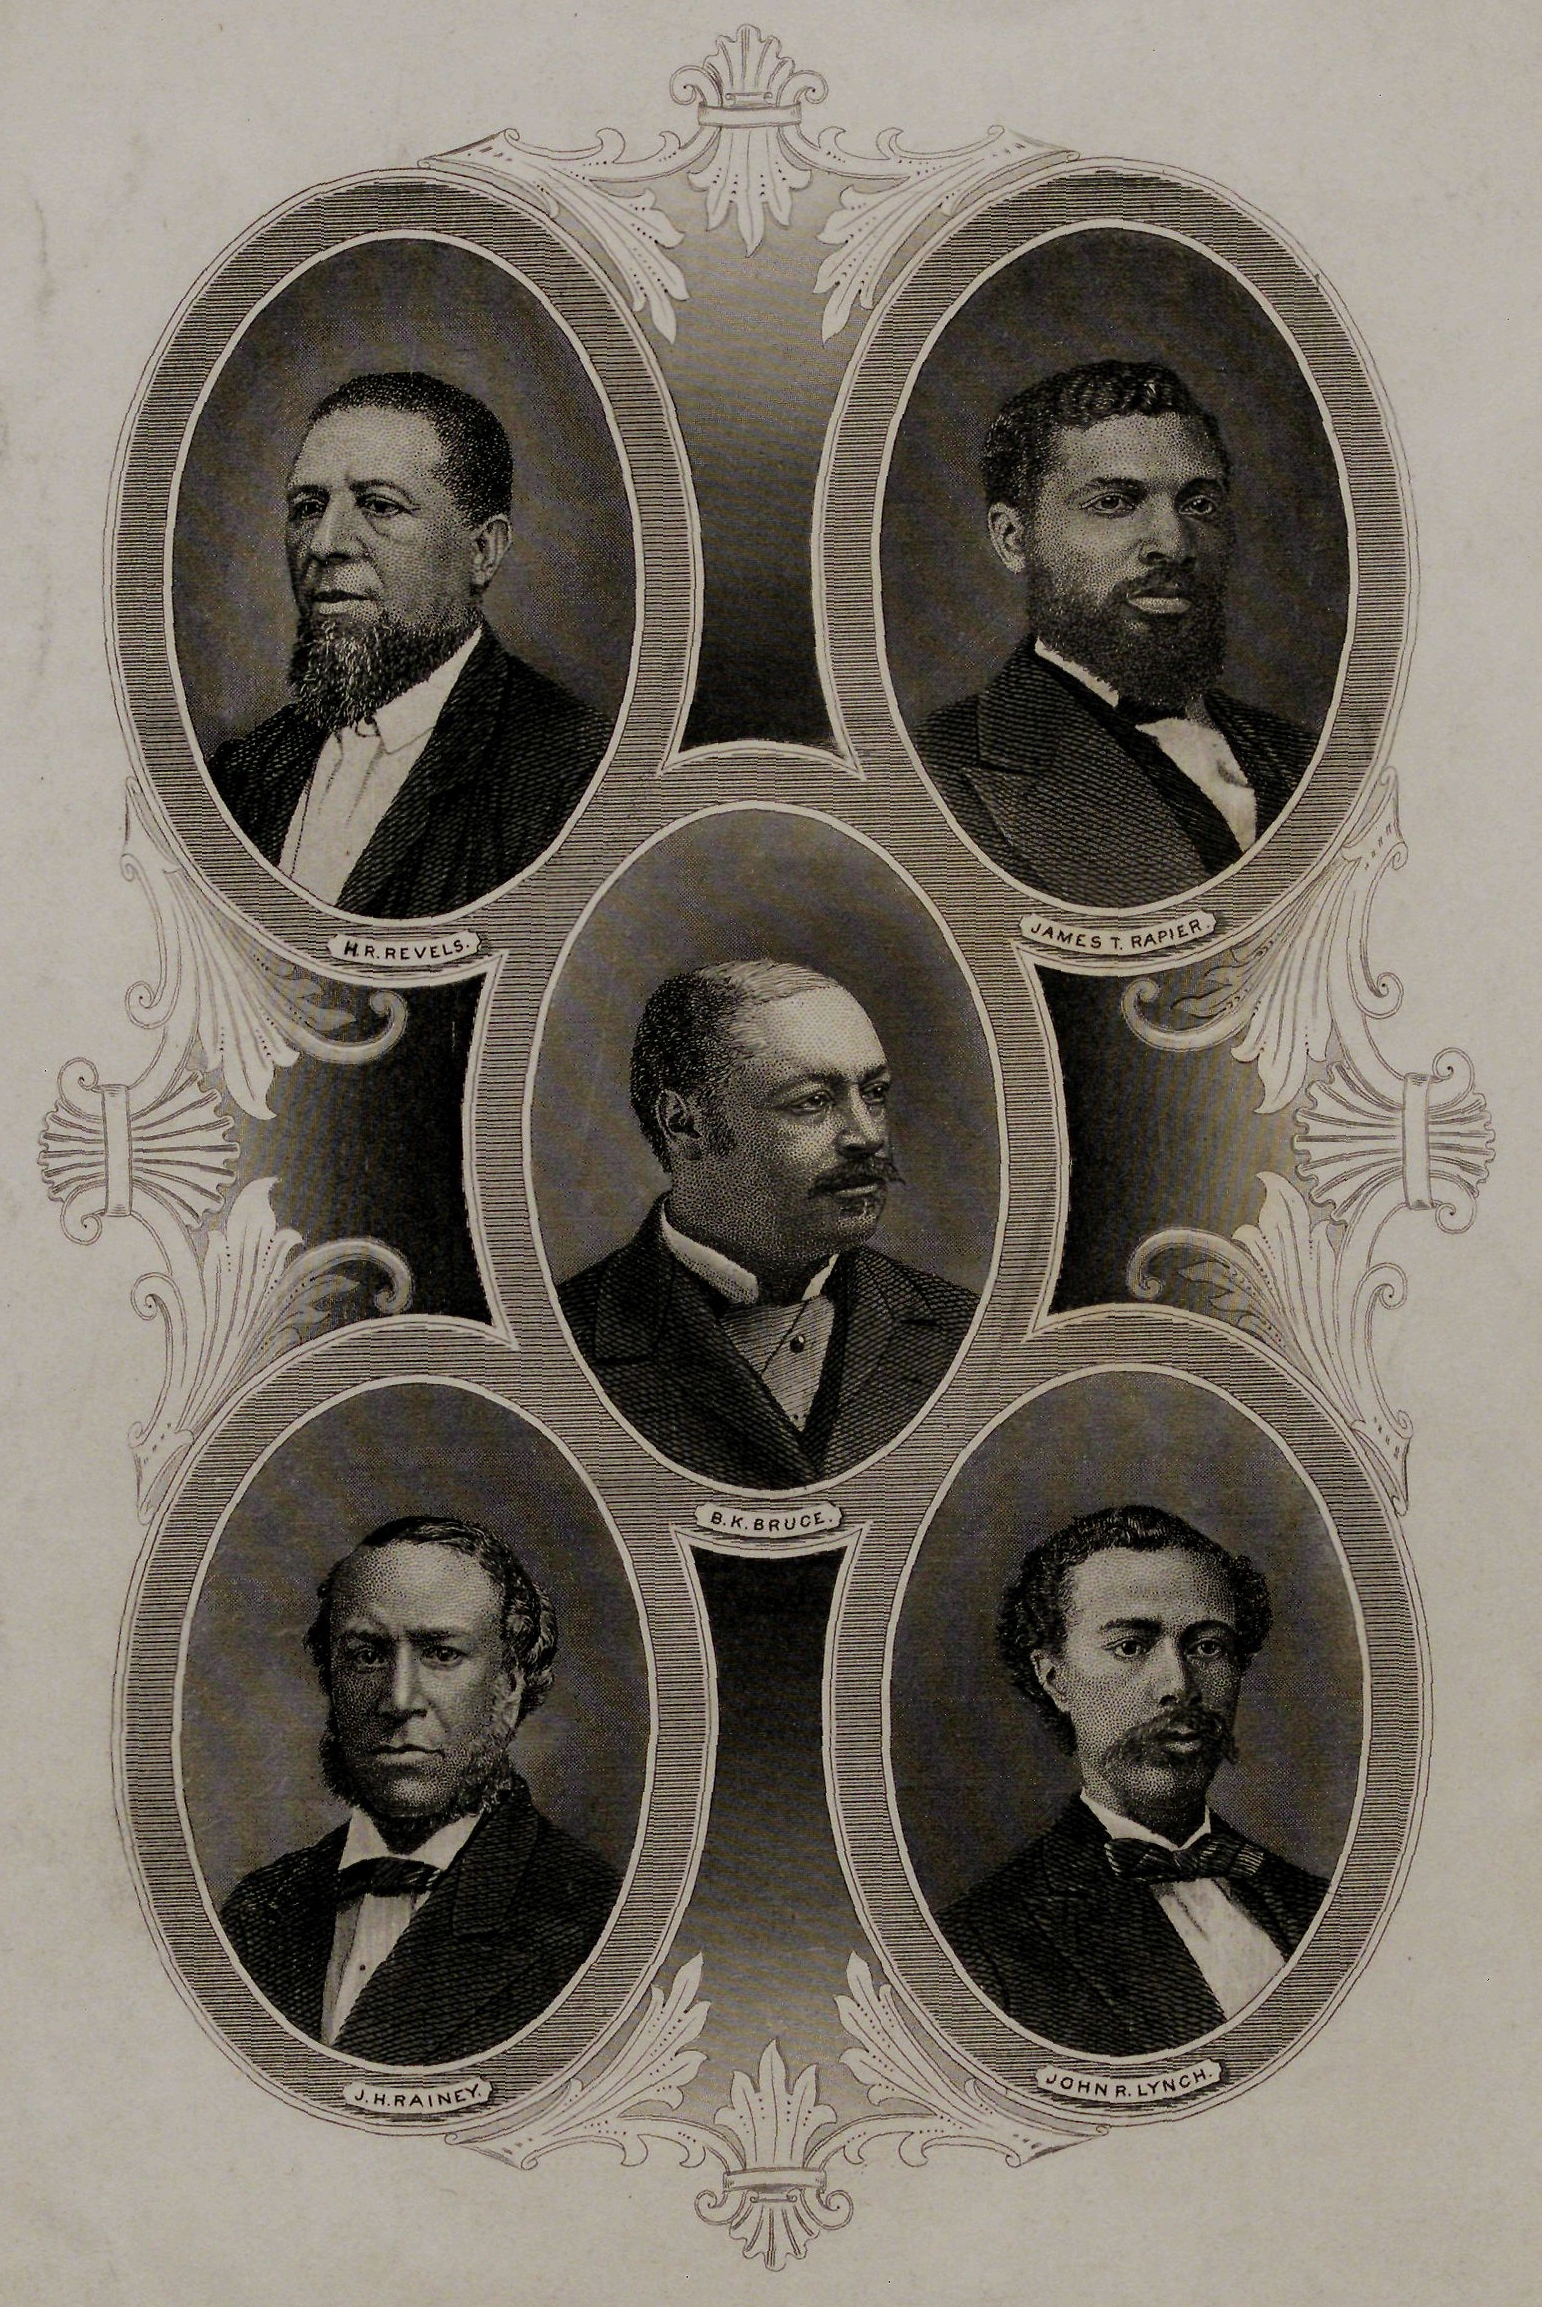 African American members of Reconstruction Congresses, Wellstood and Co., New York, ca. 1880s. (The Gilder Lehrman Institute, GLC09400.447)